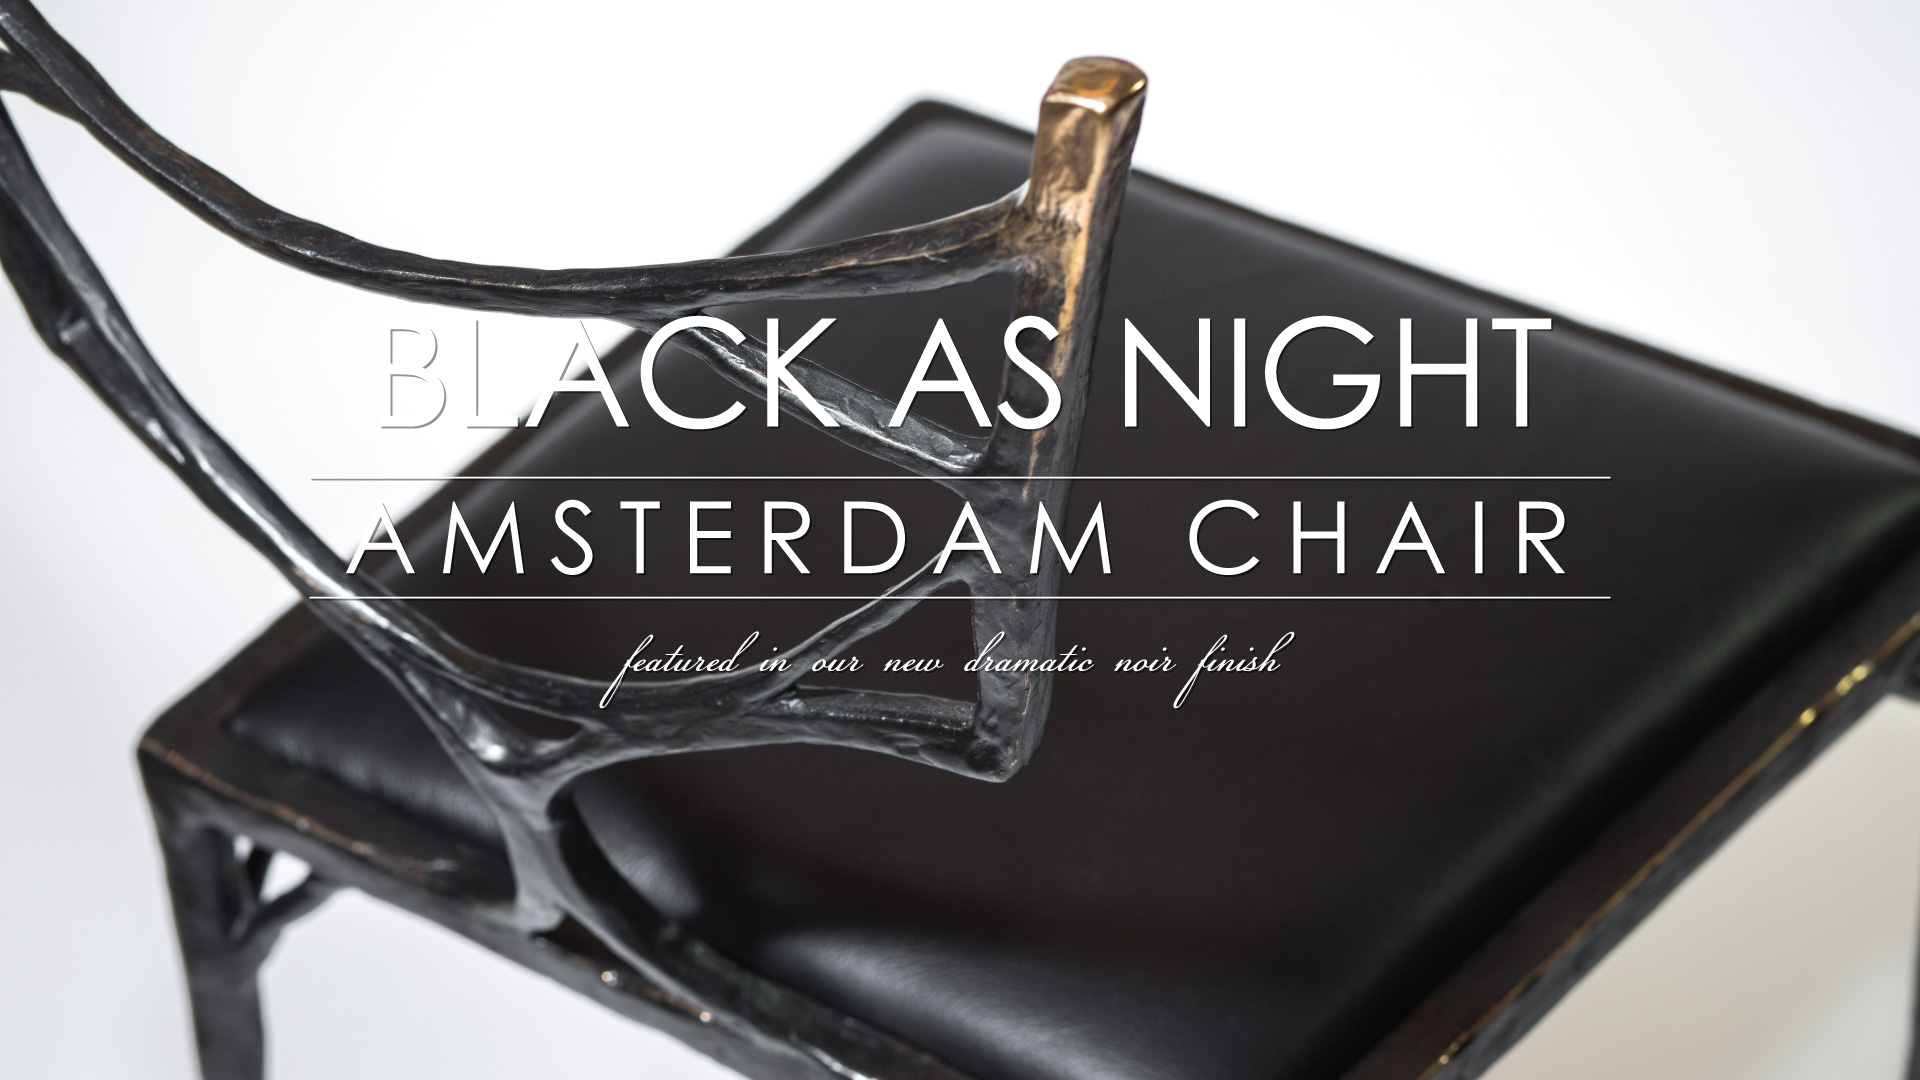 Amsterdam Chair